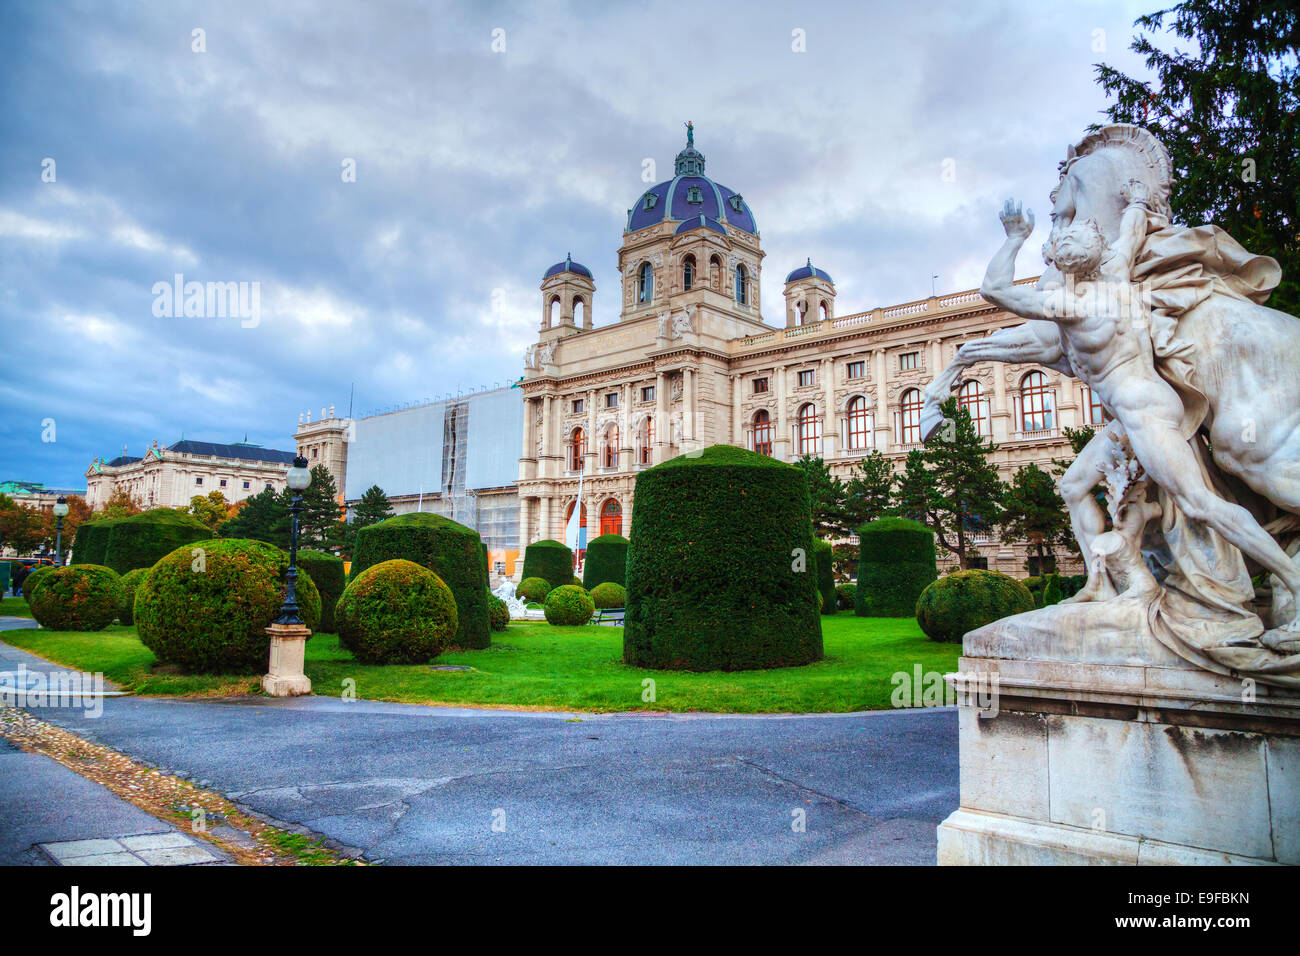 Museum of Natural History in Vienna, Austria - Stock Image